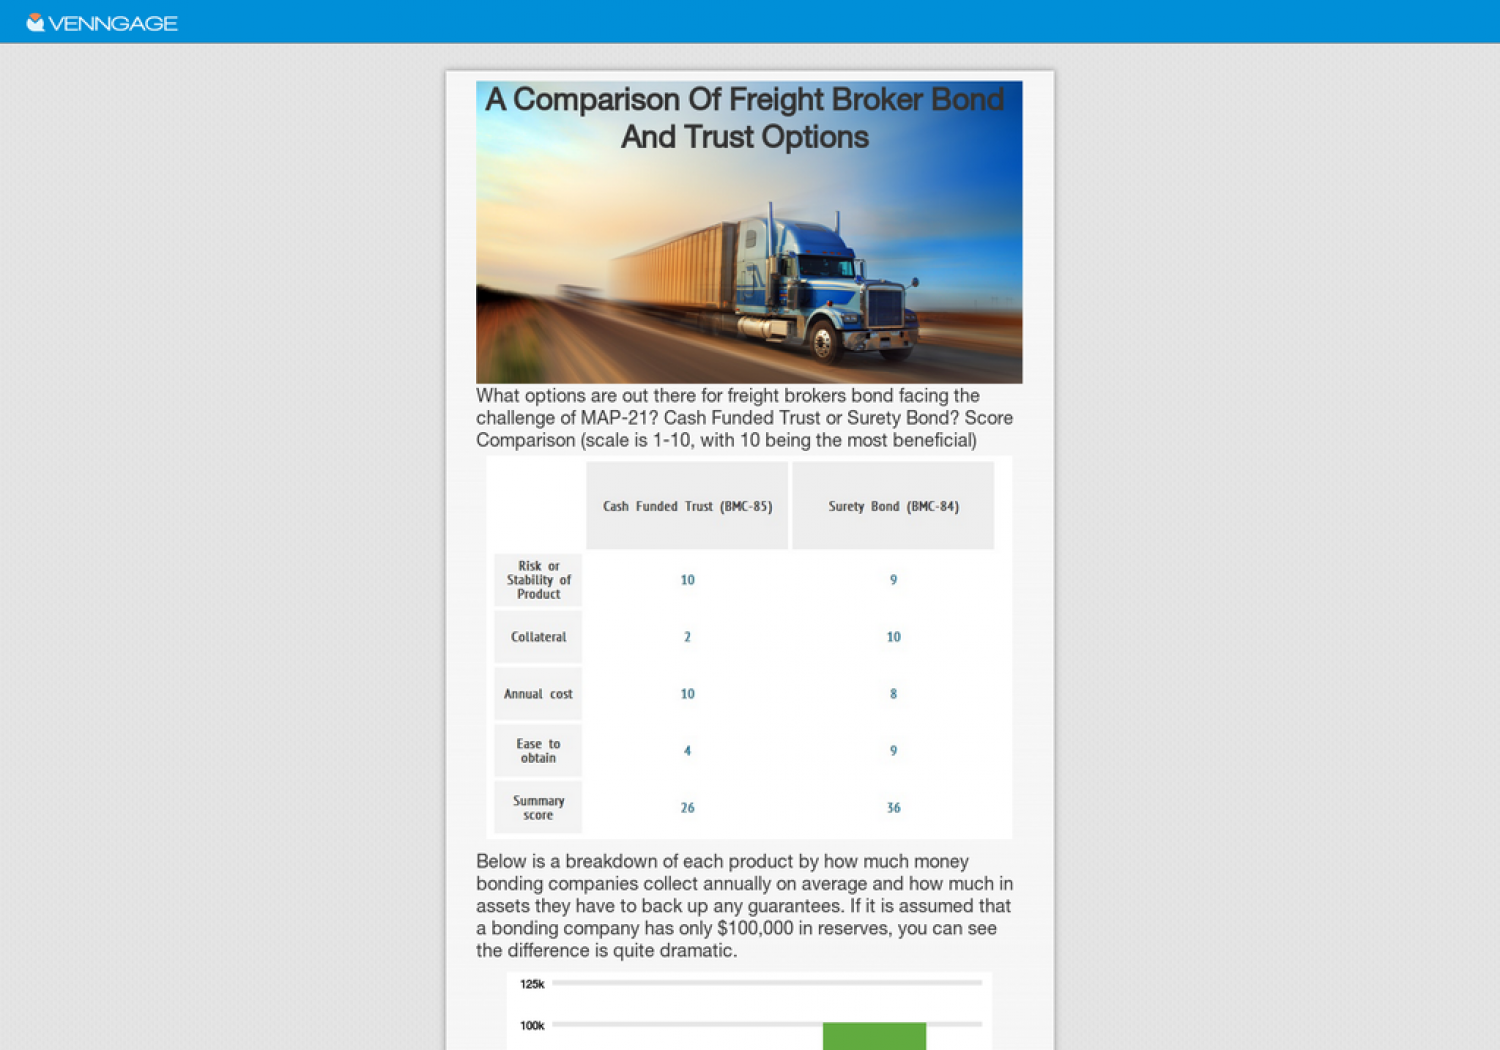 A Comparison of Freight Broker Bond & Trust Options Infographic